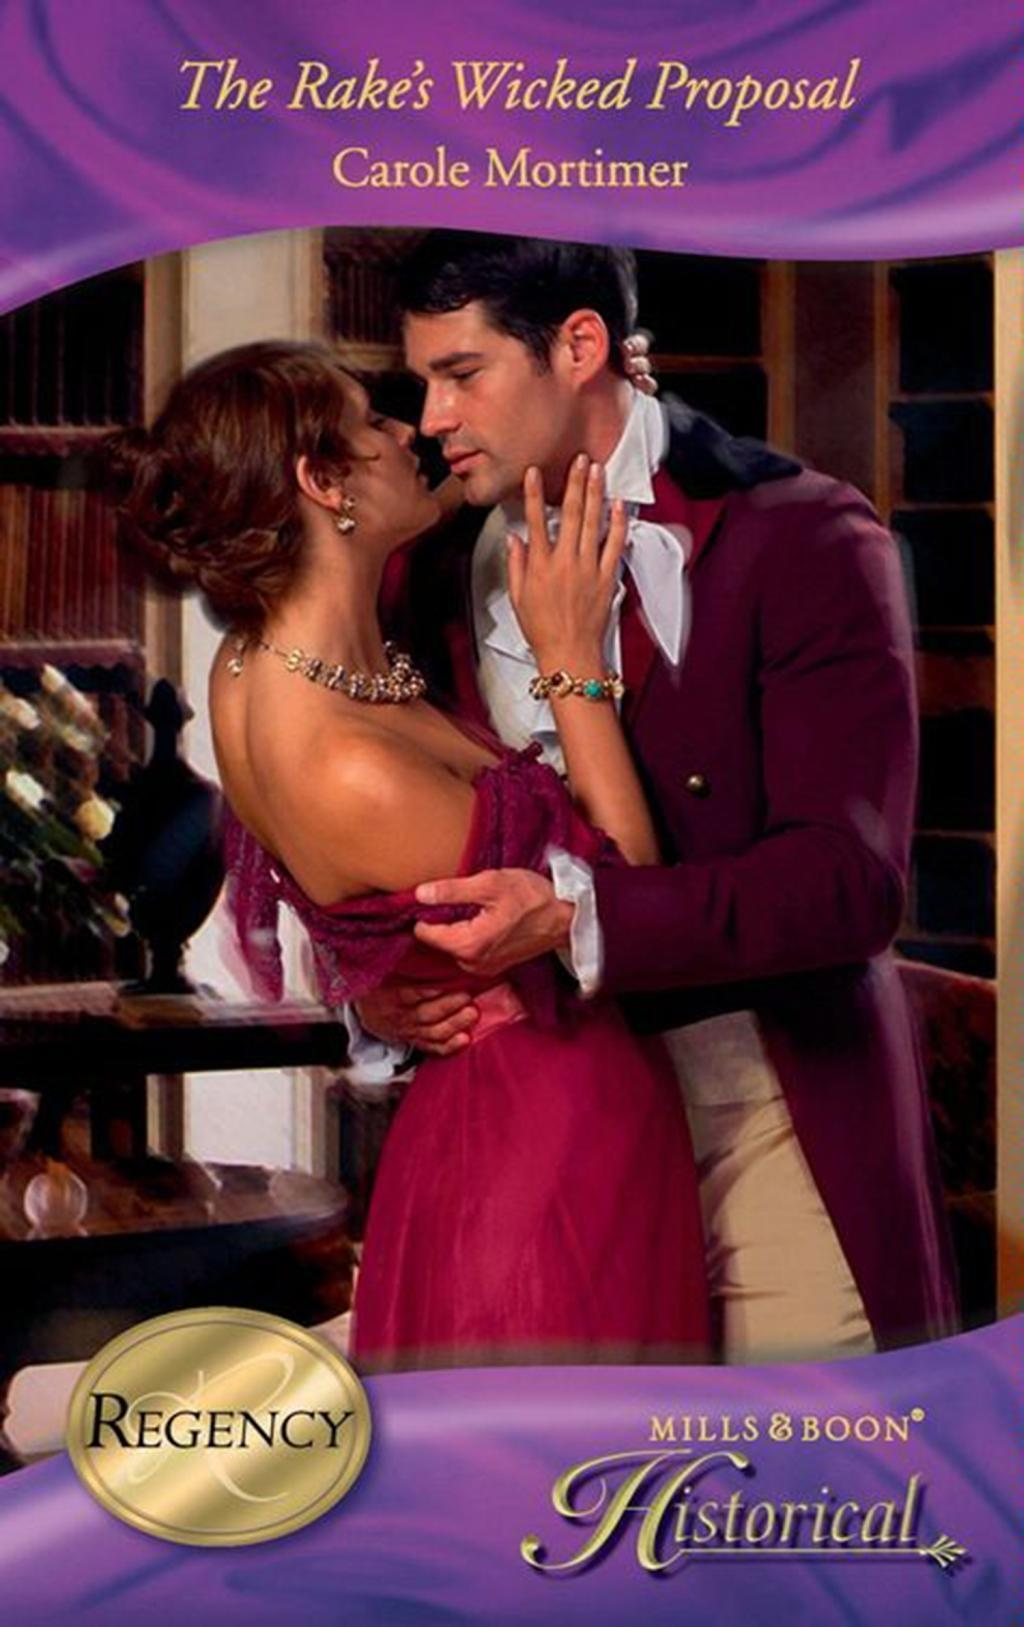 The Rake's Wicked Proposal (Mills & Boon Historical) (The Notorious St Claires, Book 2)